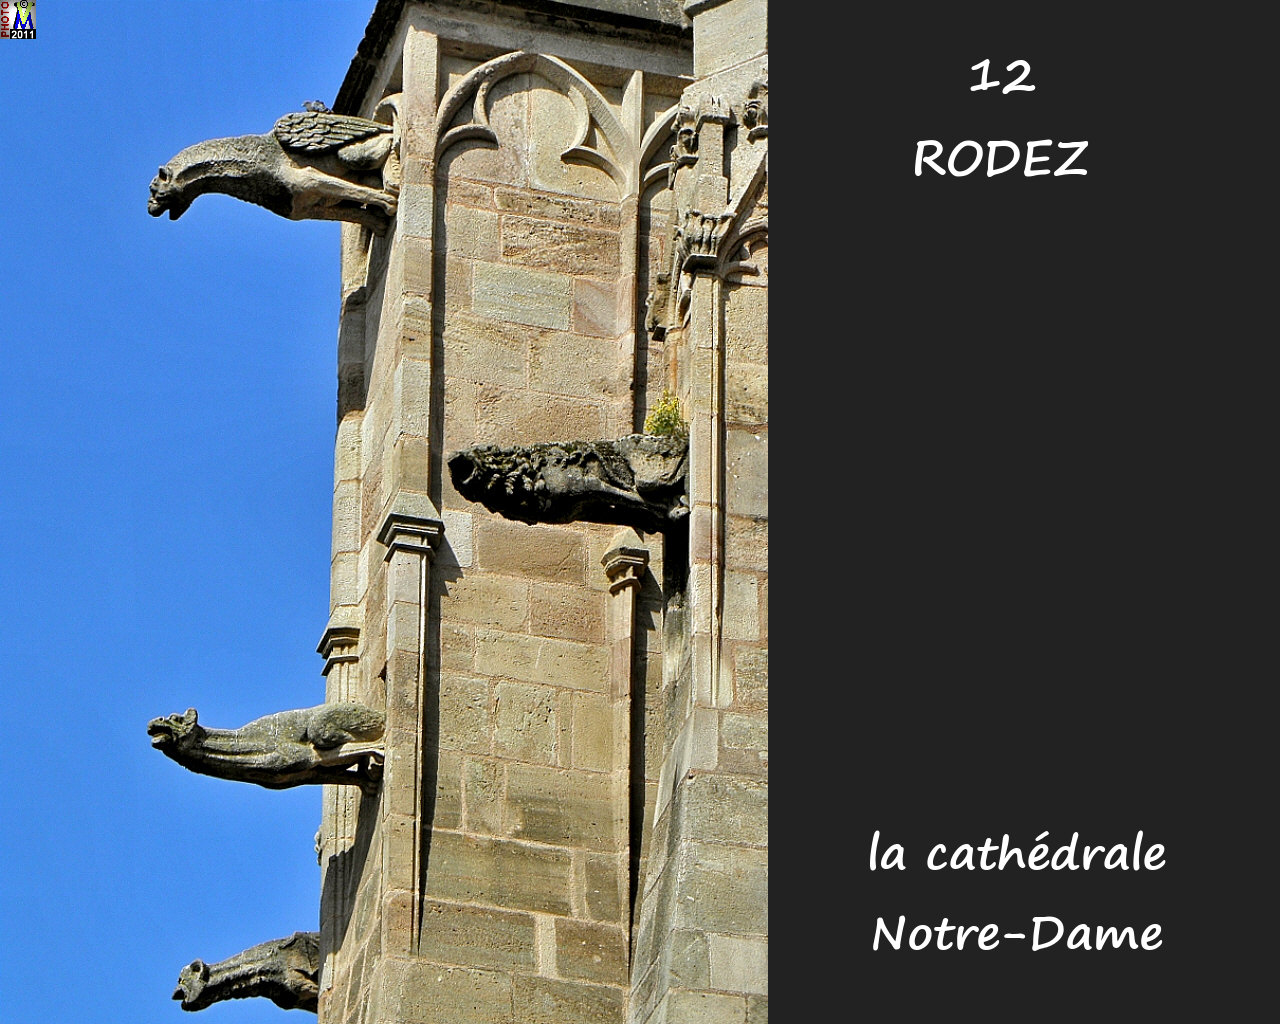 12RODEZ_cathedrale_188.jpg